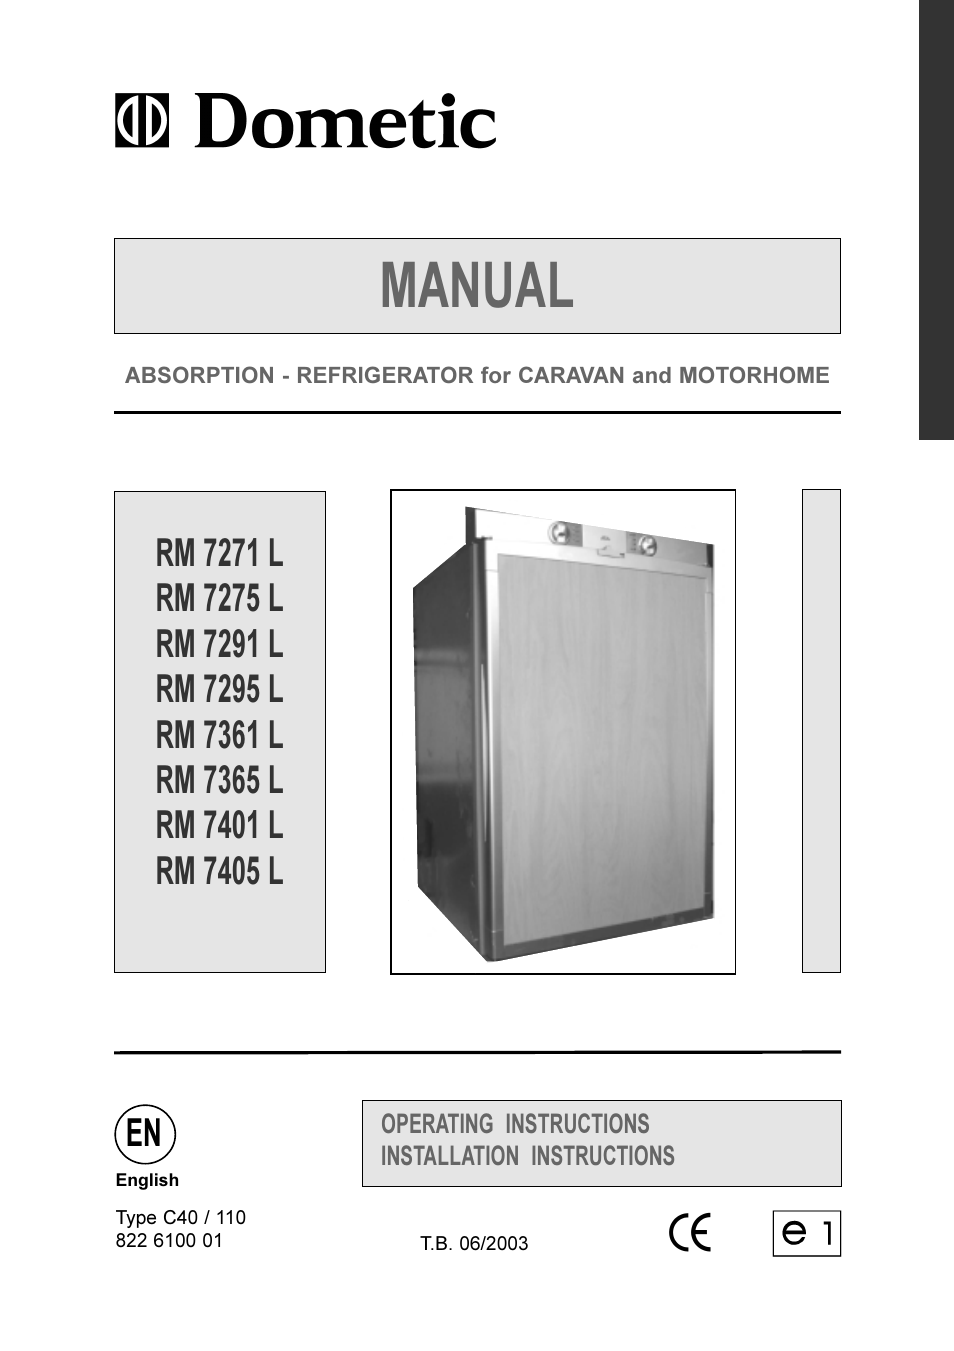 dometic rm 7401 l user manual 30 pages also for rm 7405 l rm rh manualsdir com dometic fridge service manual dometic rv fridge owner's manual